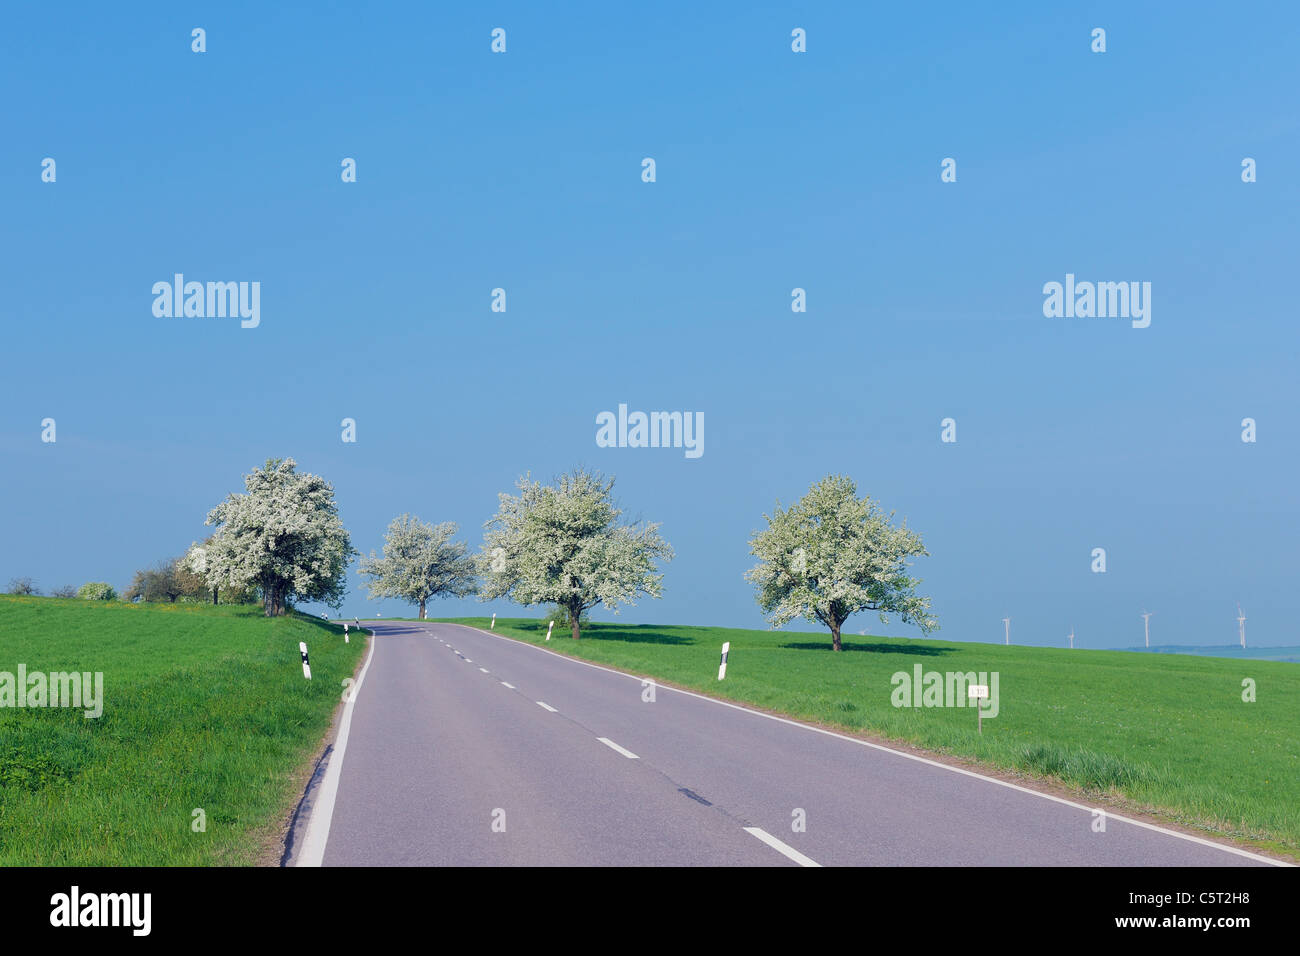 Germany, Saarland, View of blossoming fruit tree besides rural road - Stock Image